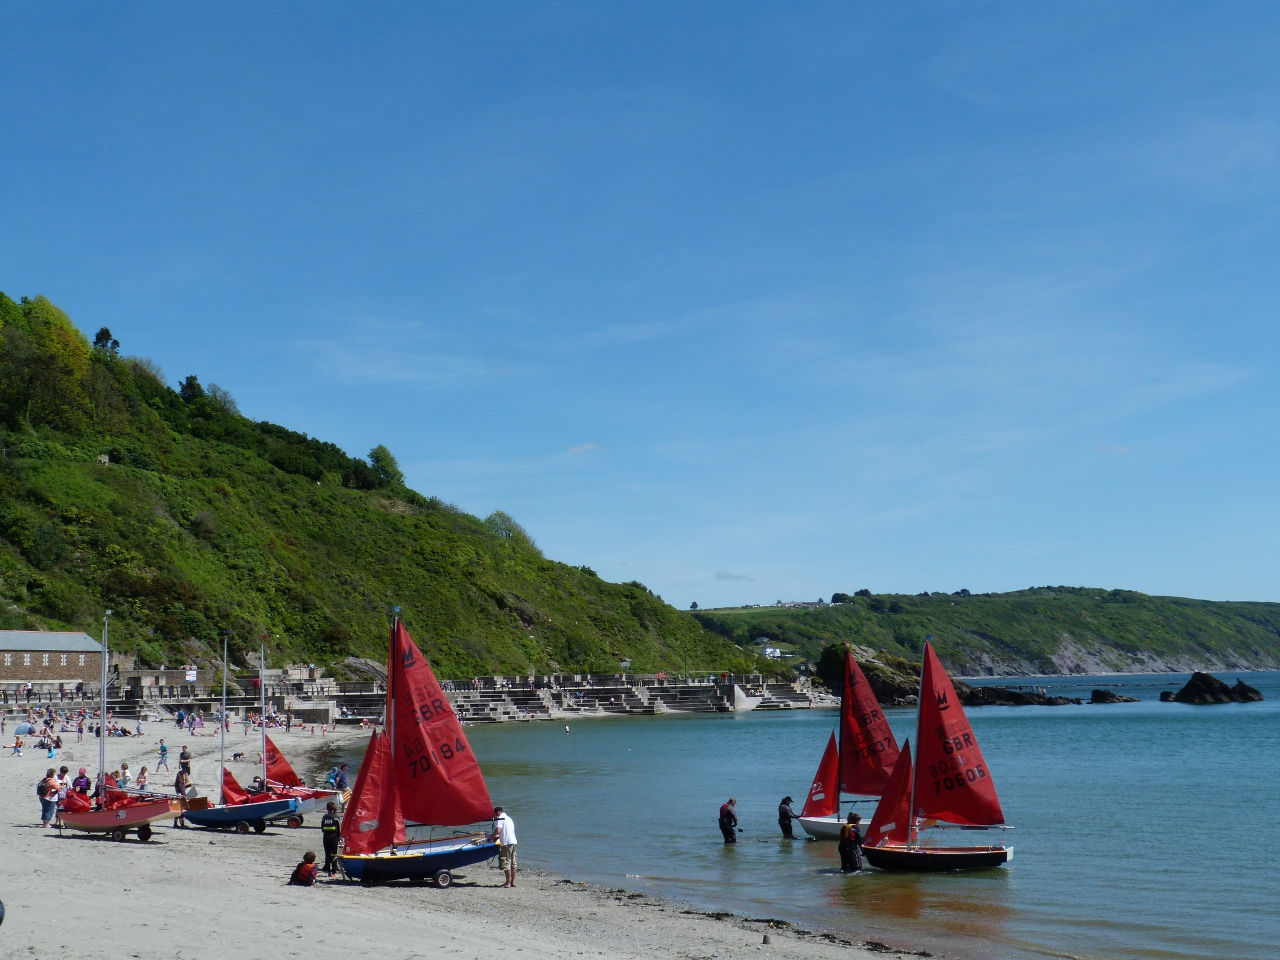 Mirror dinghies launching off a sandy beach into a blue sea under a cloudless blue sky